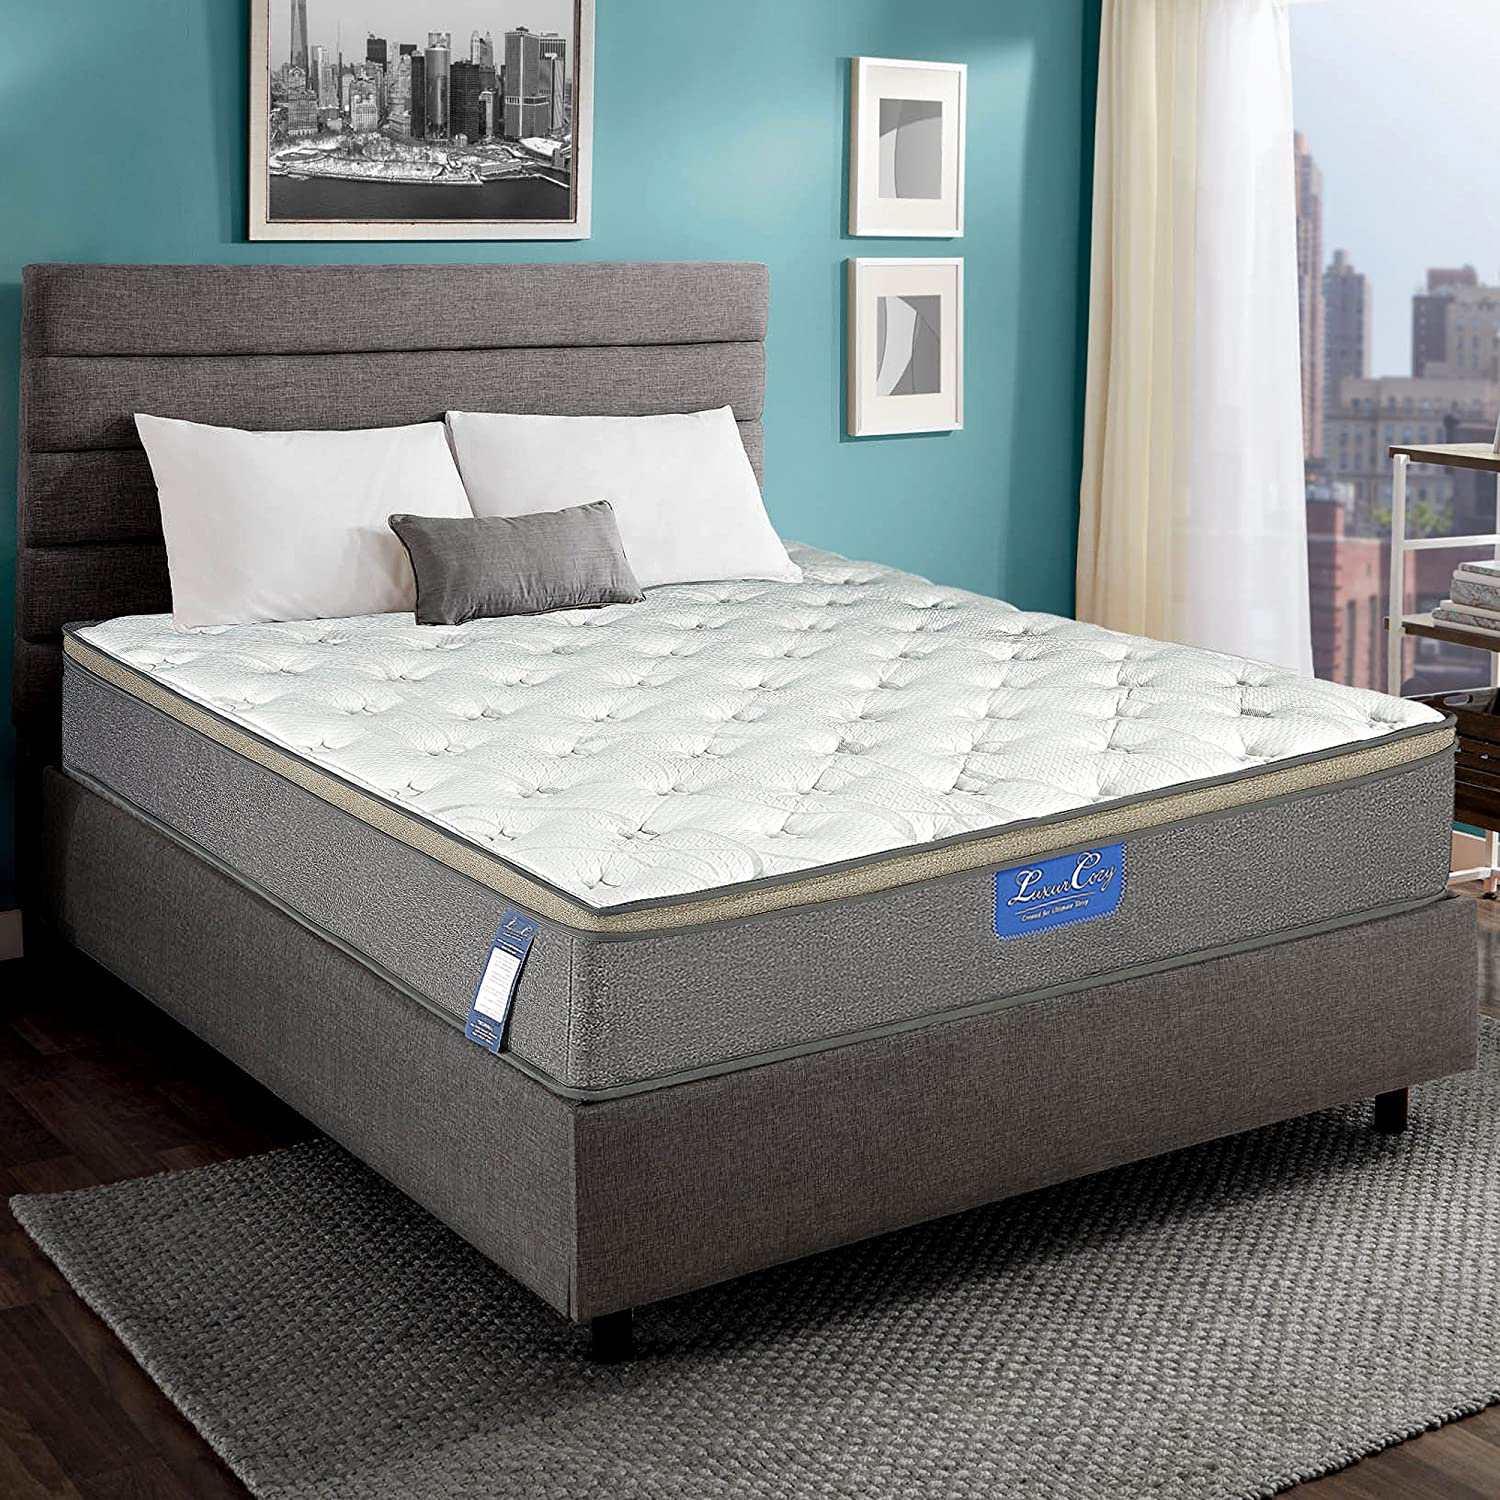 Luxury Innerspring Mattress – 12 Inch Euro Top Medium Soft Hybrid Gel Memory Foam 825 Sets Individual Wrapped Spring Ergonomic Structure Design 10 Years Warranty King